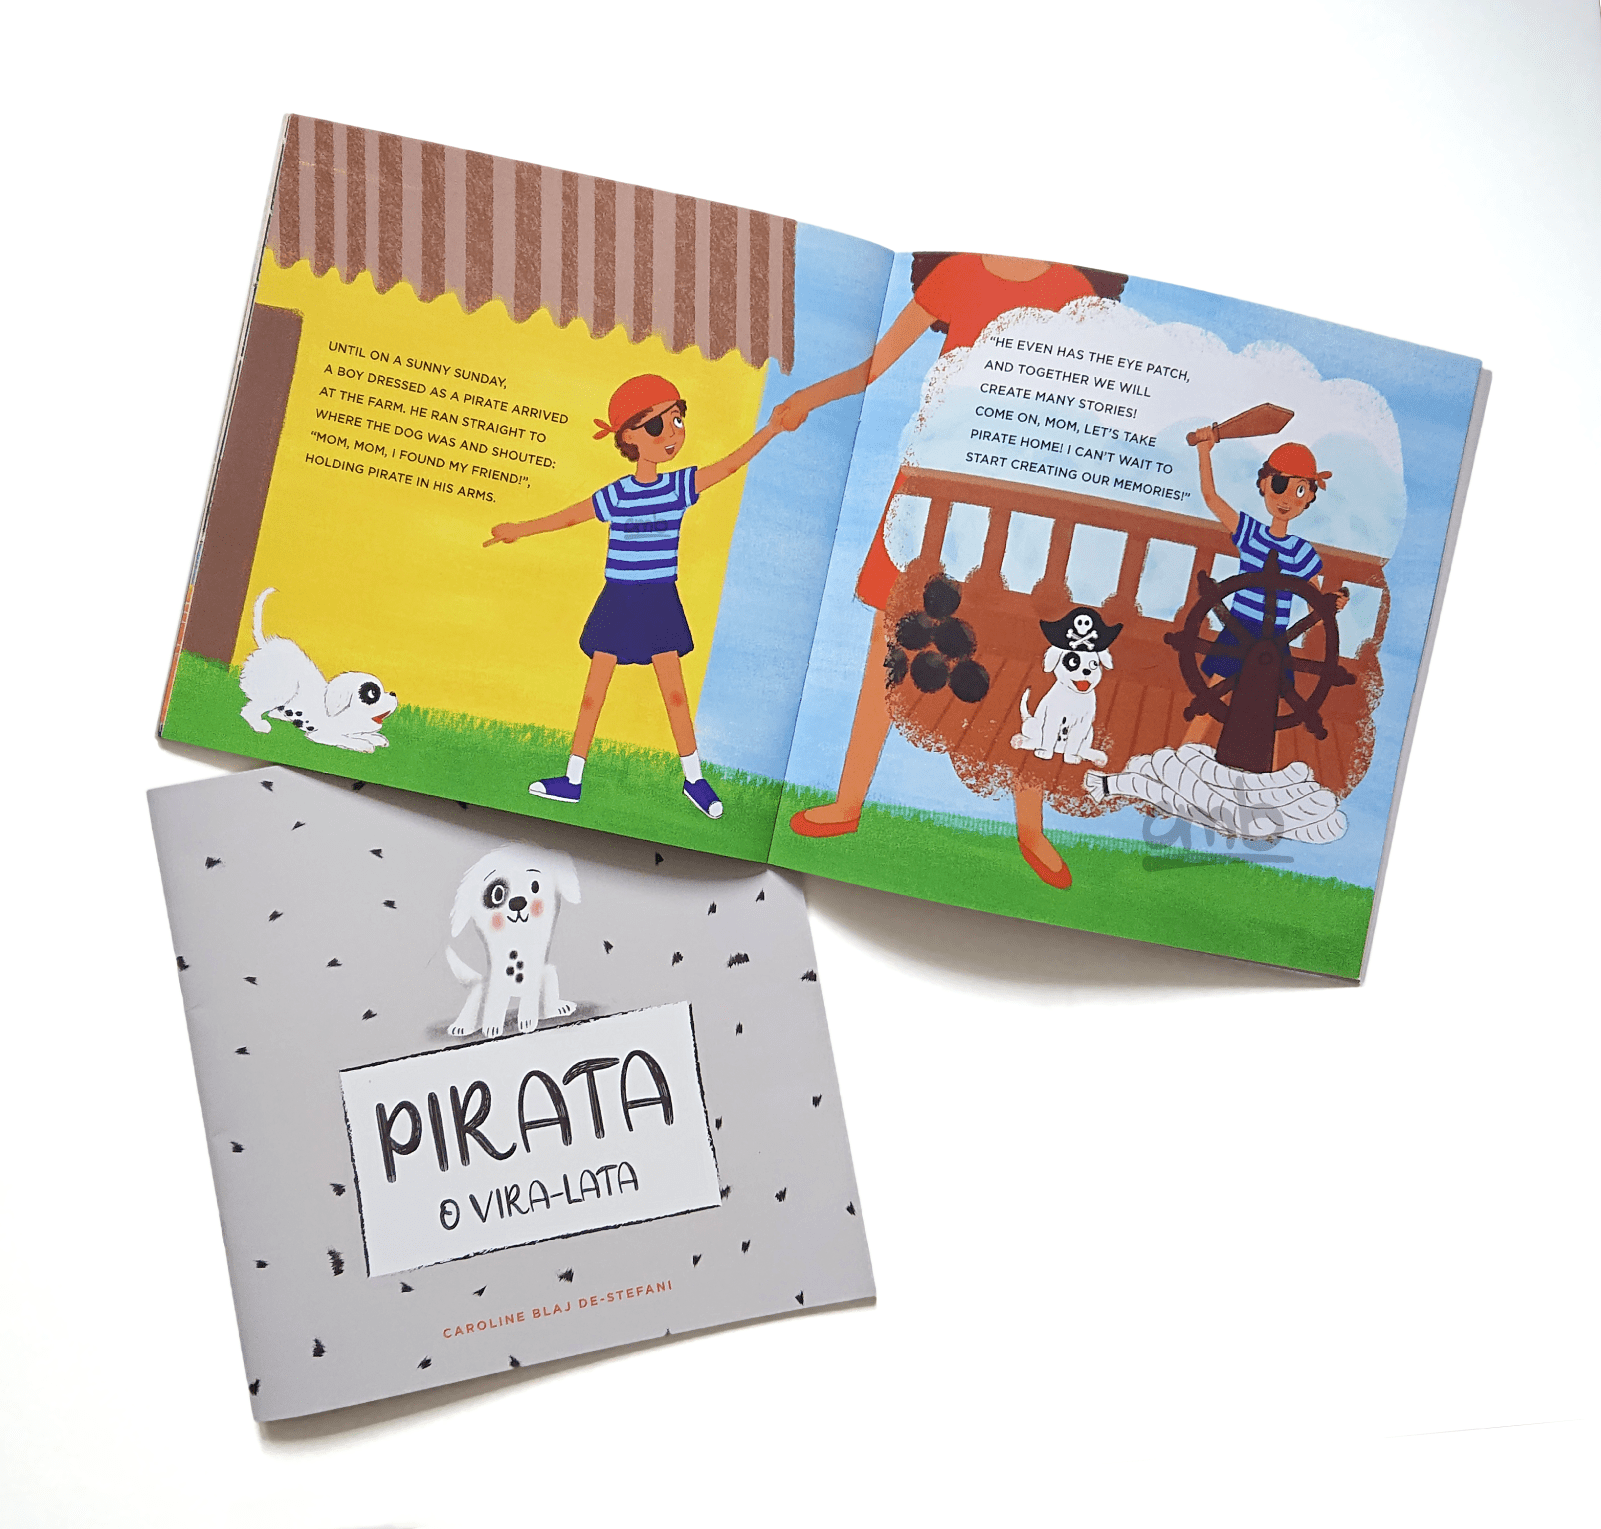 Pirate cover and illustration